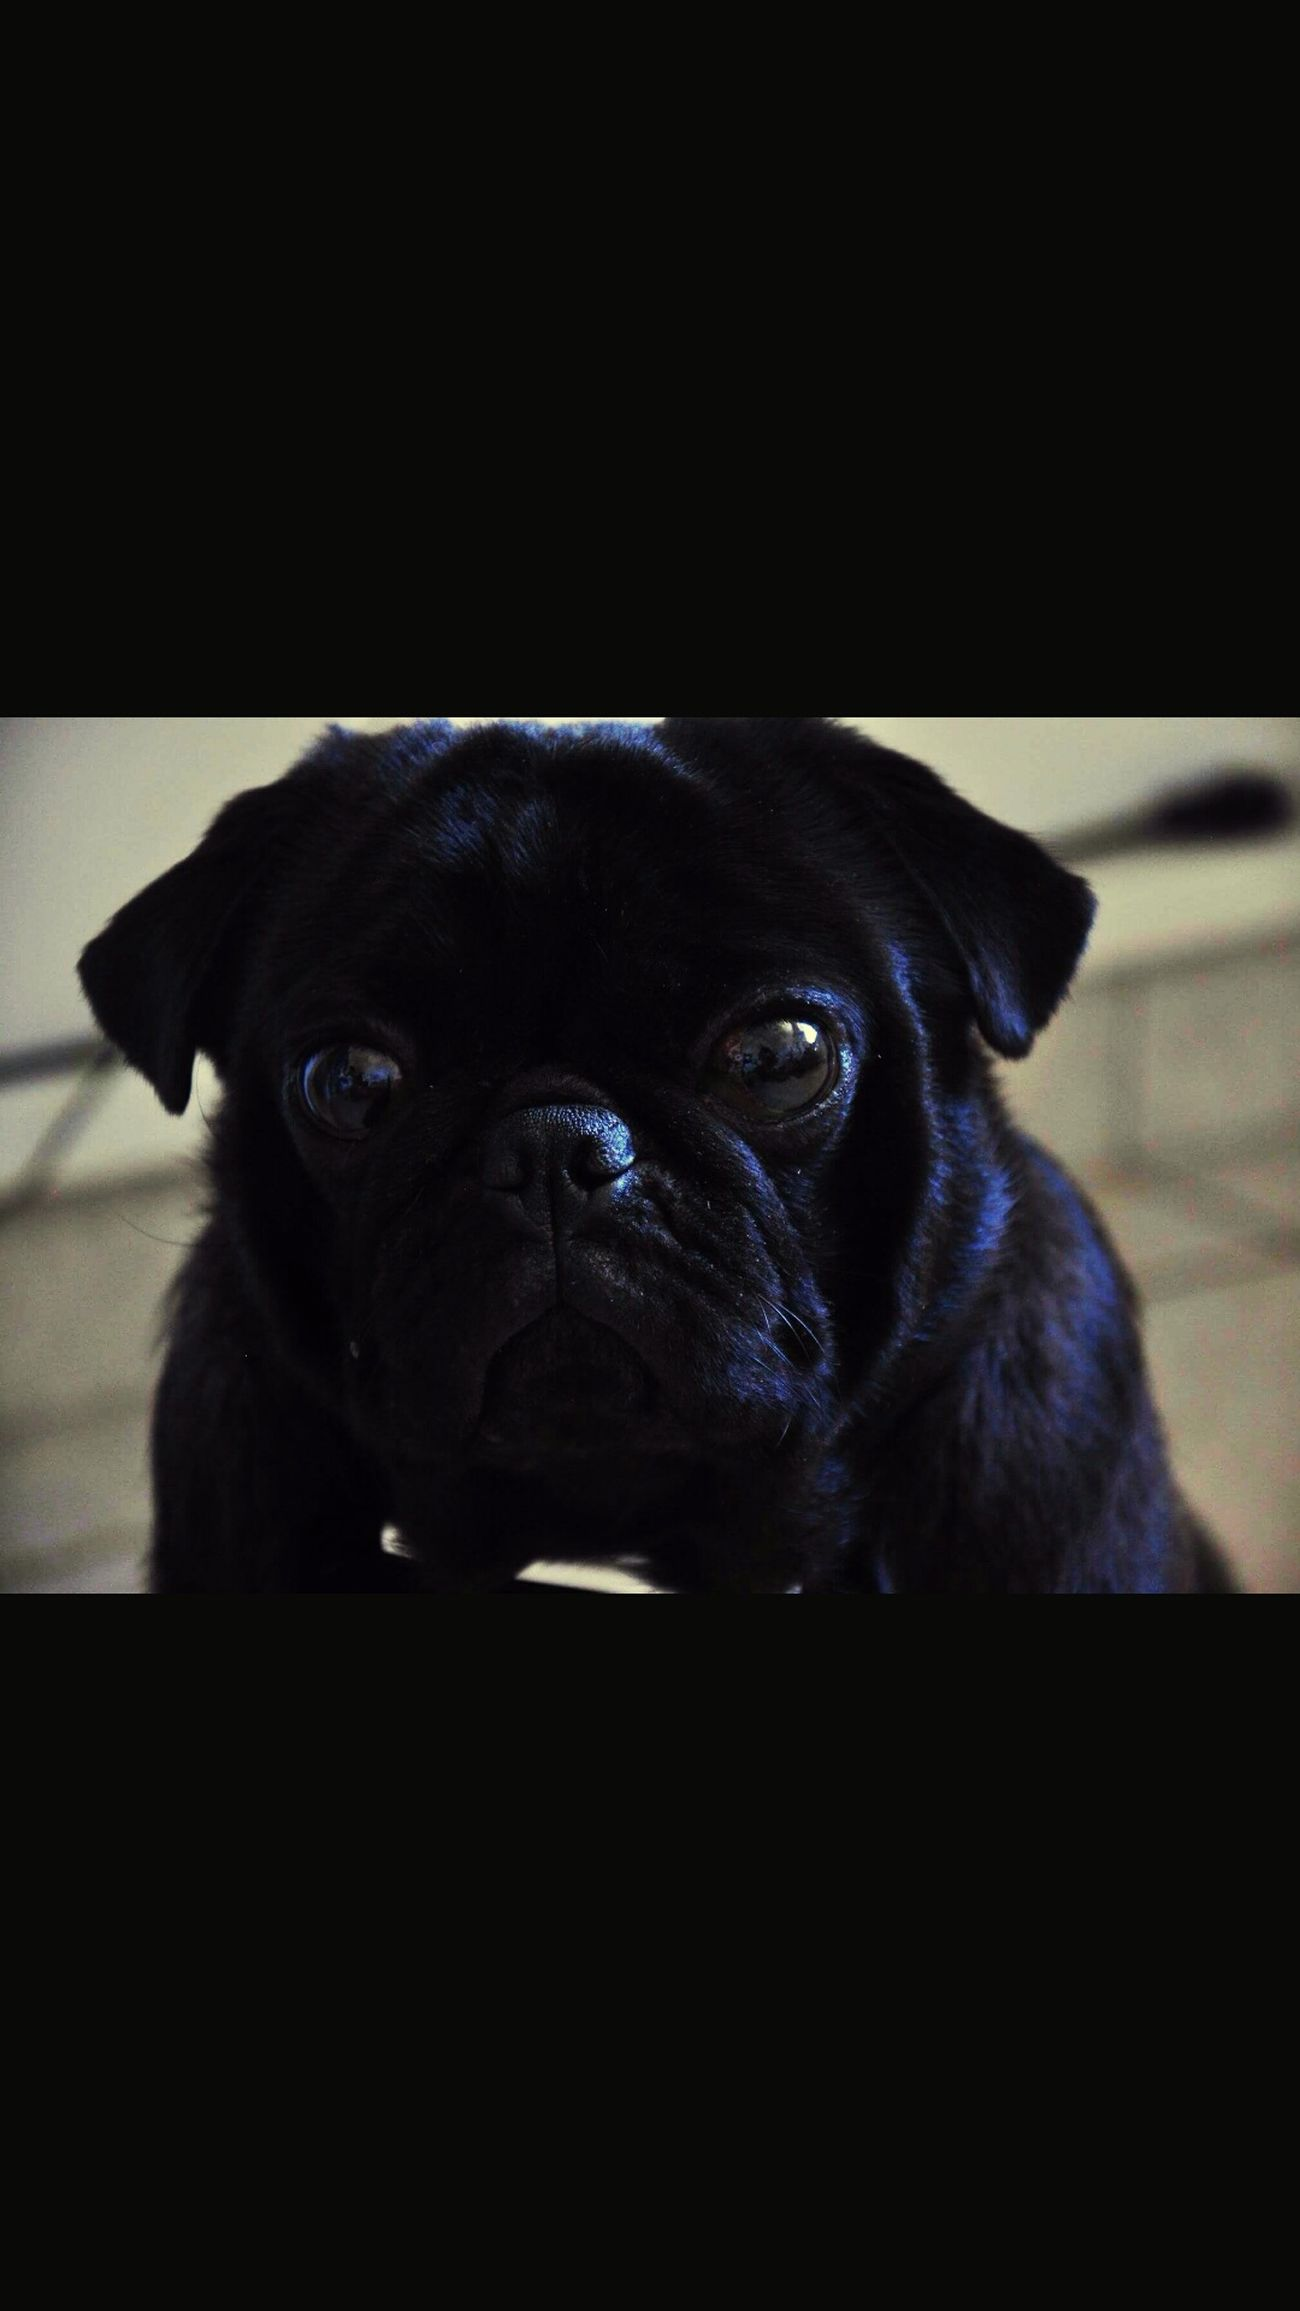 Eyes Puget Sound Pug Life ❤ Pugstagram Pug Time No People Loyalty Zoology Animal Nose Animal Looking Focus On Foreground Front View Black Color Animal Themes Puglover First Eyeem Photo Puglife Pug Girl Puglove  Pugpug Pugsofinstagram Puglove  Pug One Animal